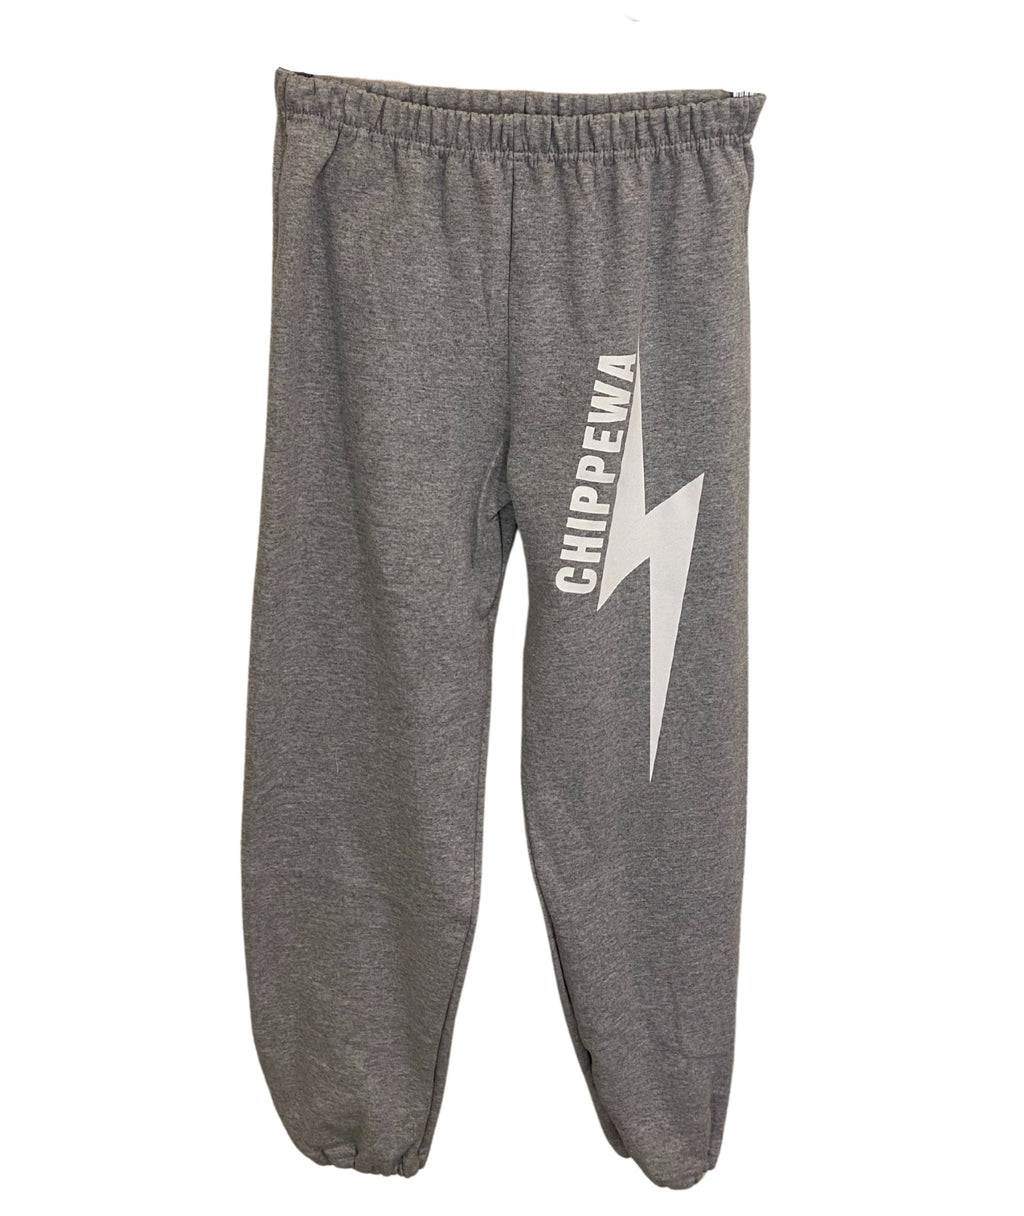 Gildan White Lightning Bolt Sweatpants Dark Grey